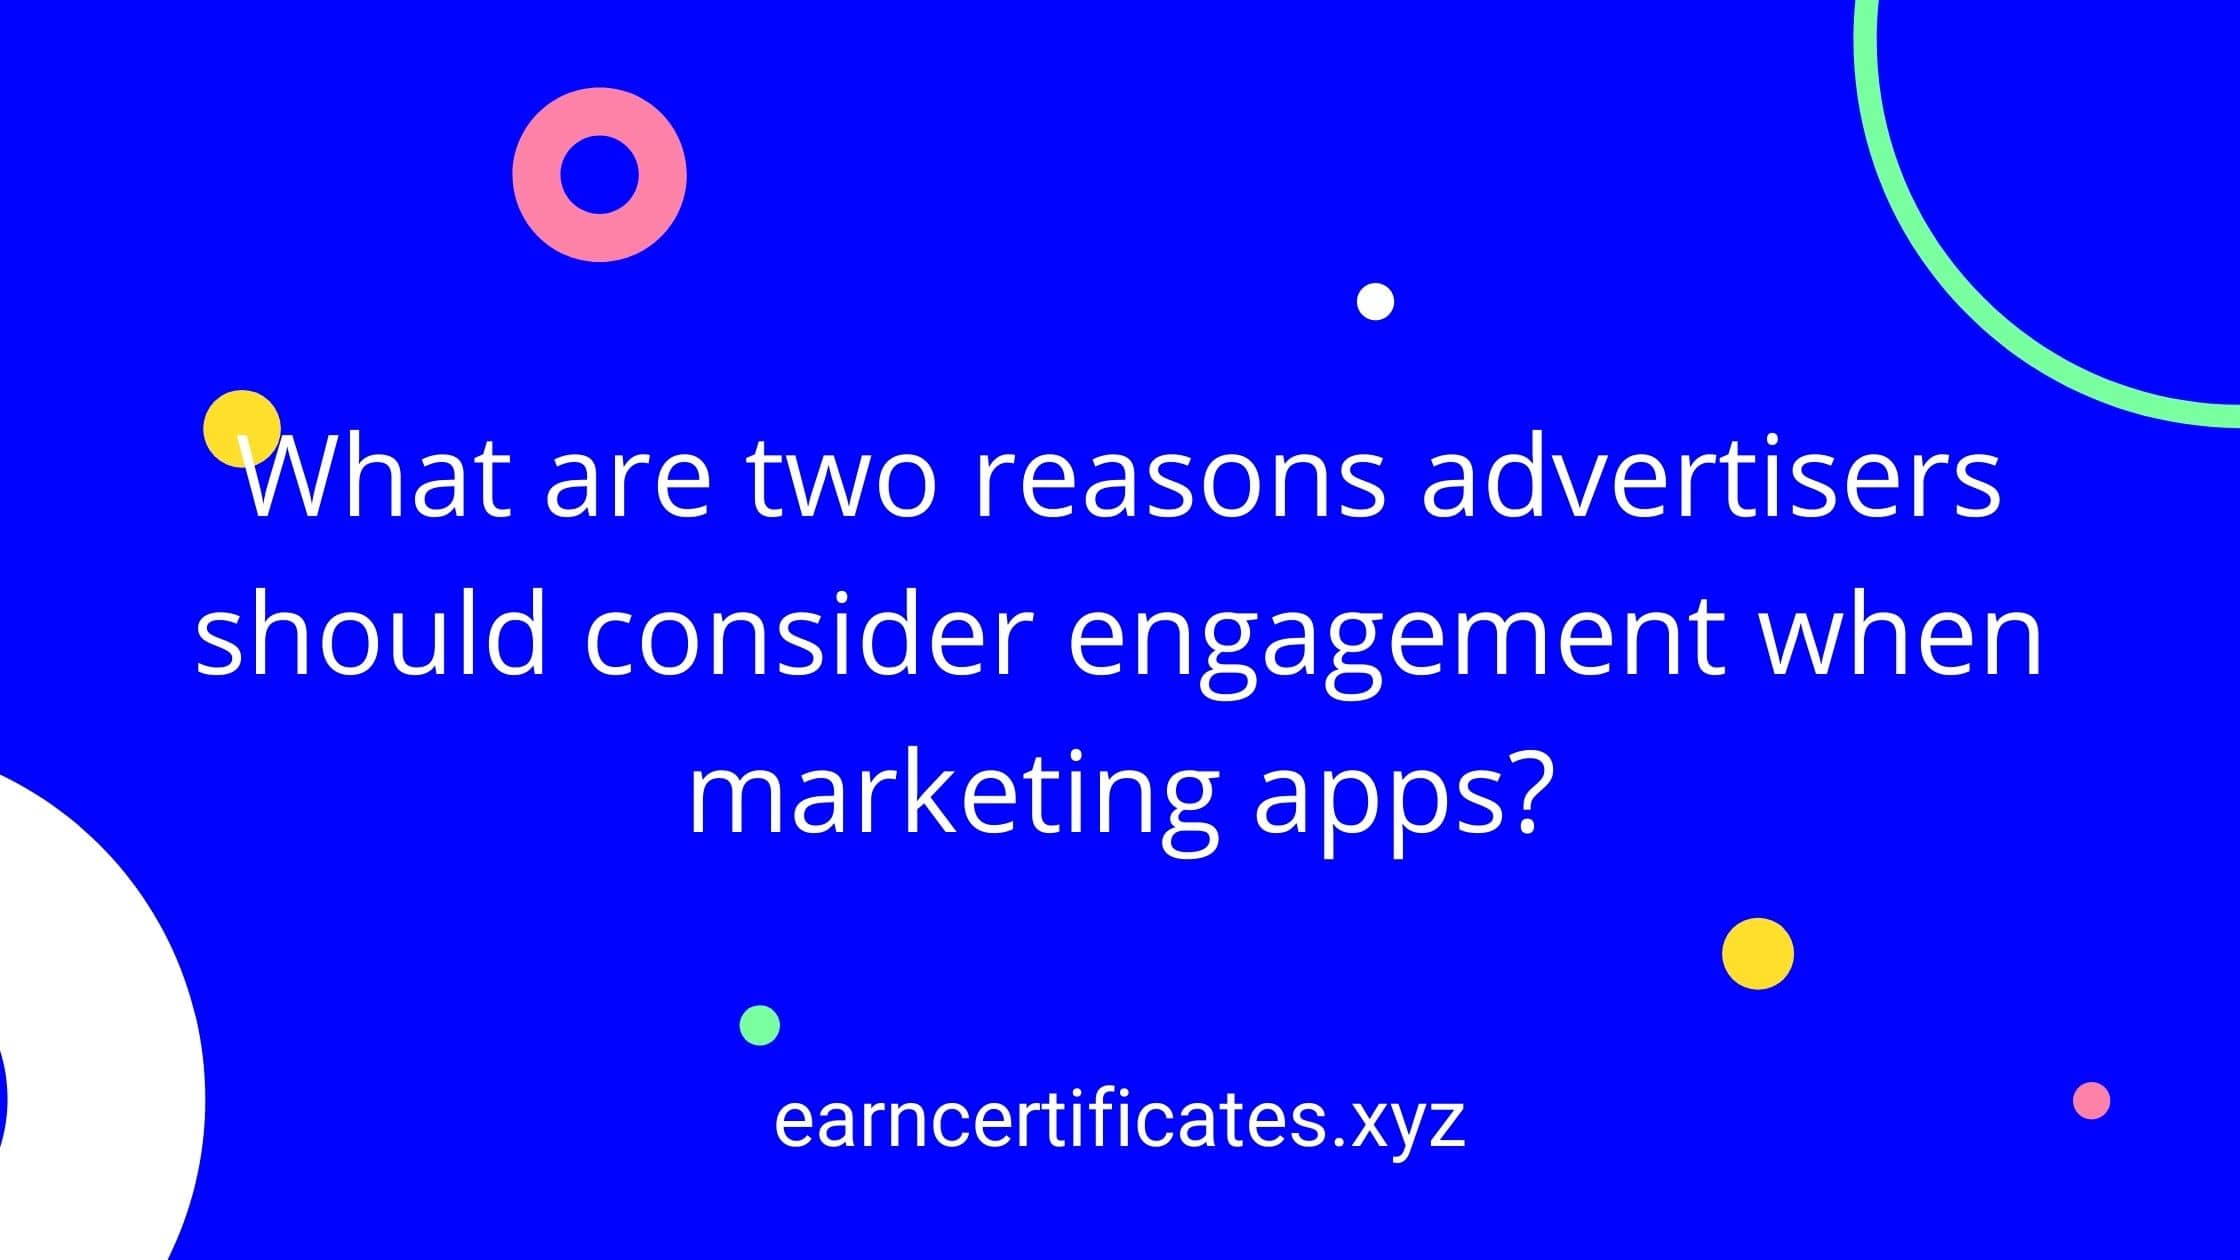 What are two reasons advertisers should consider engagement when marketing apps?